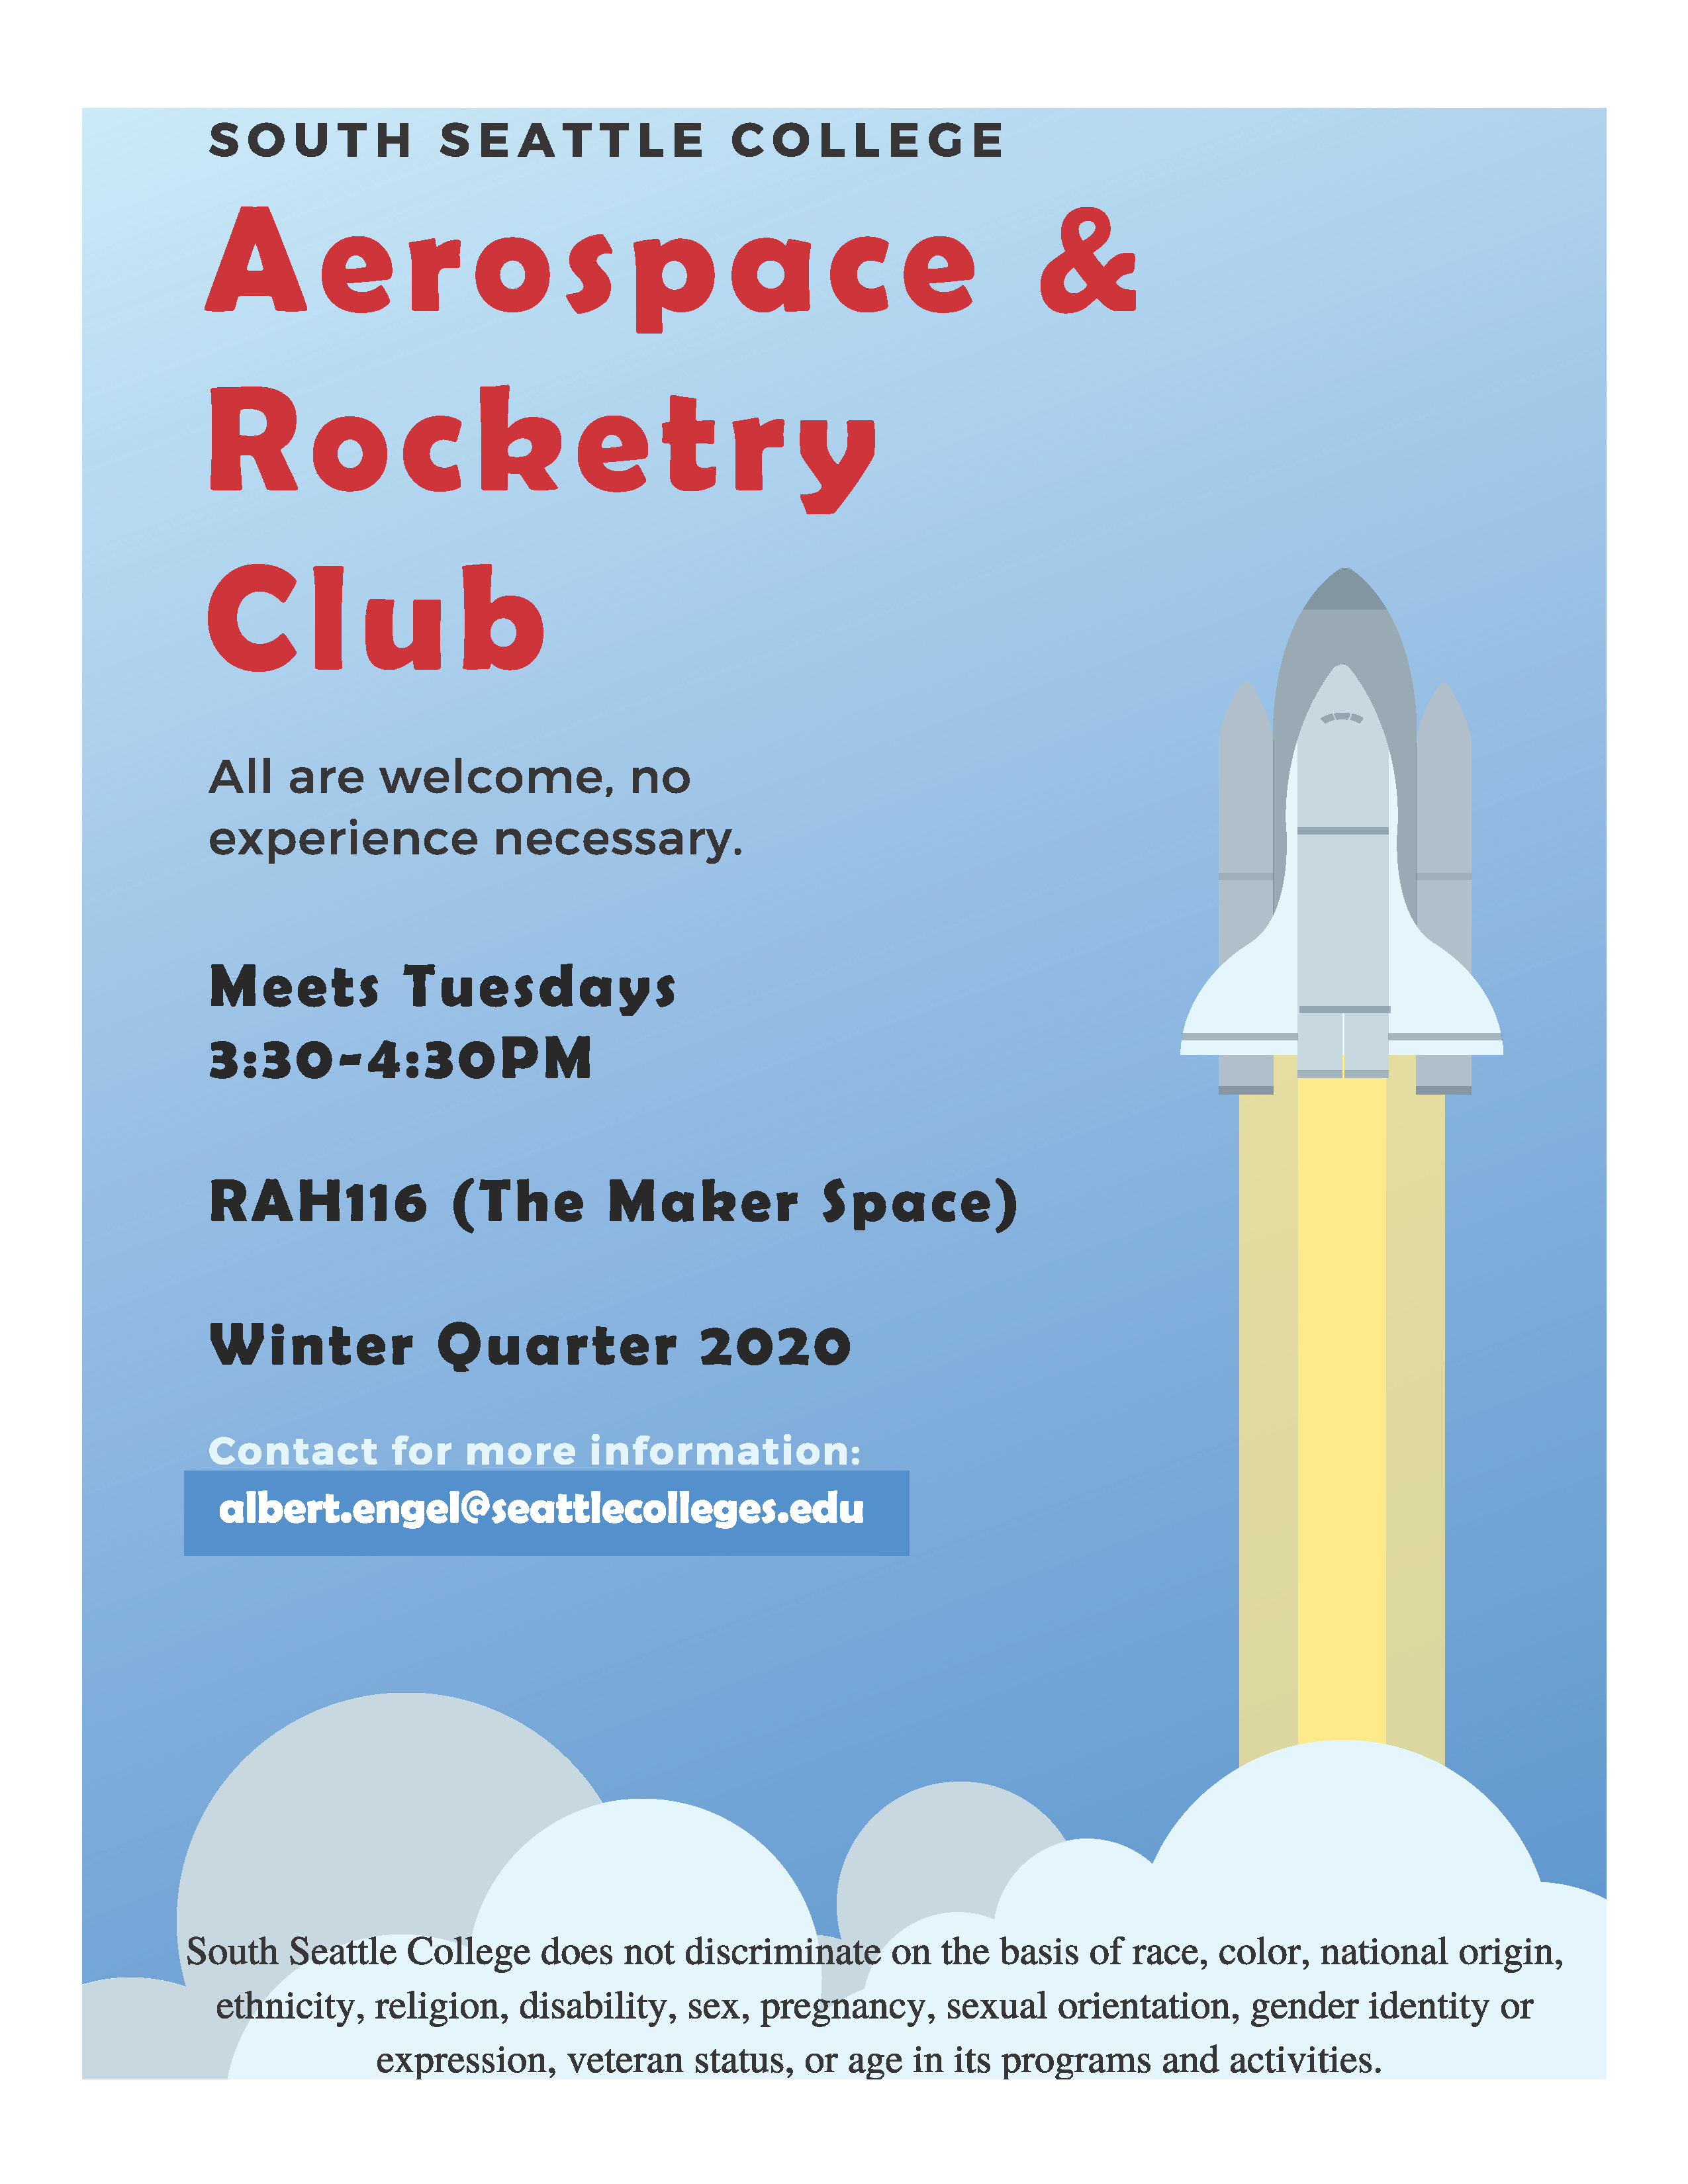 Aerospace & Rocketry Club. All are welcome, no experience necessary. Meets Tuesdays 3:30-4:30 pm